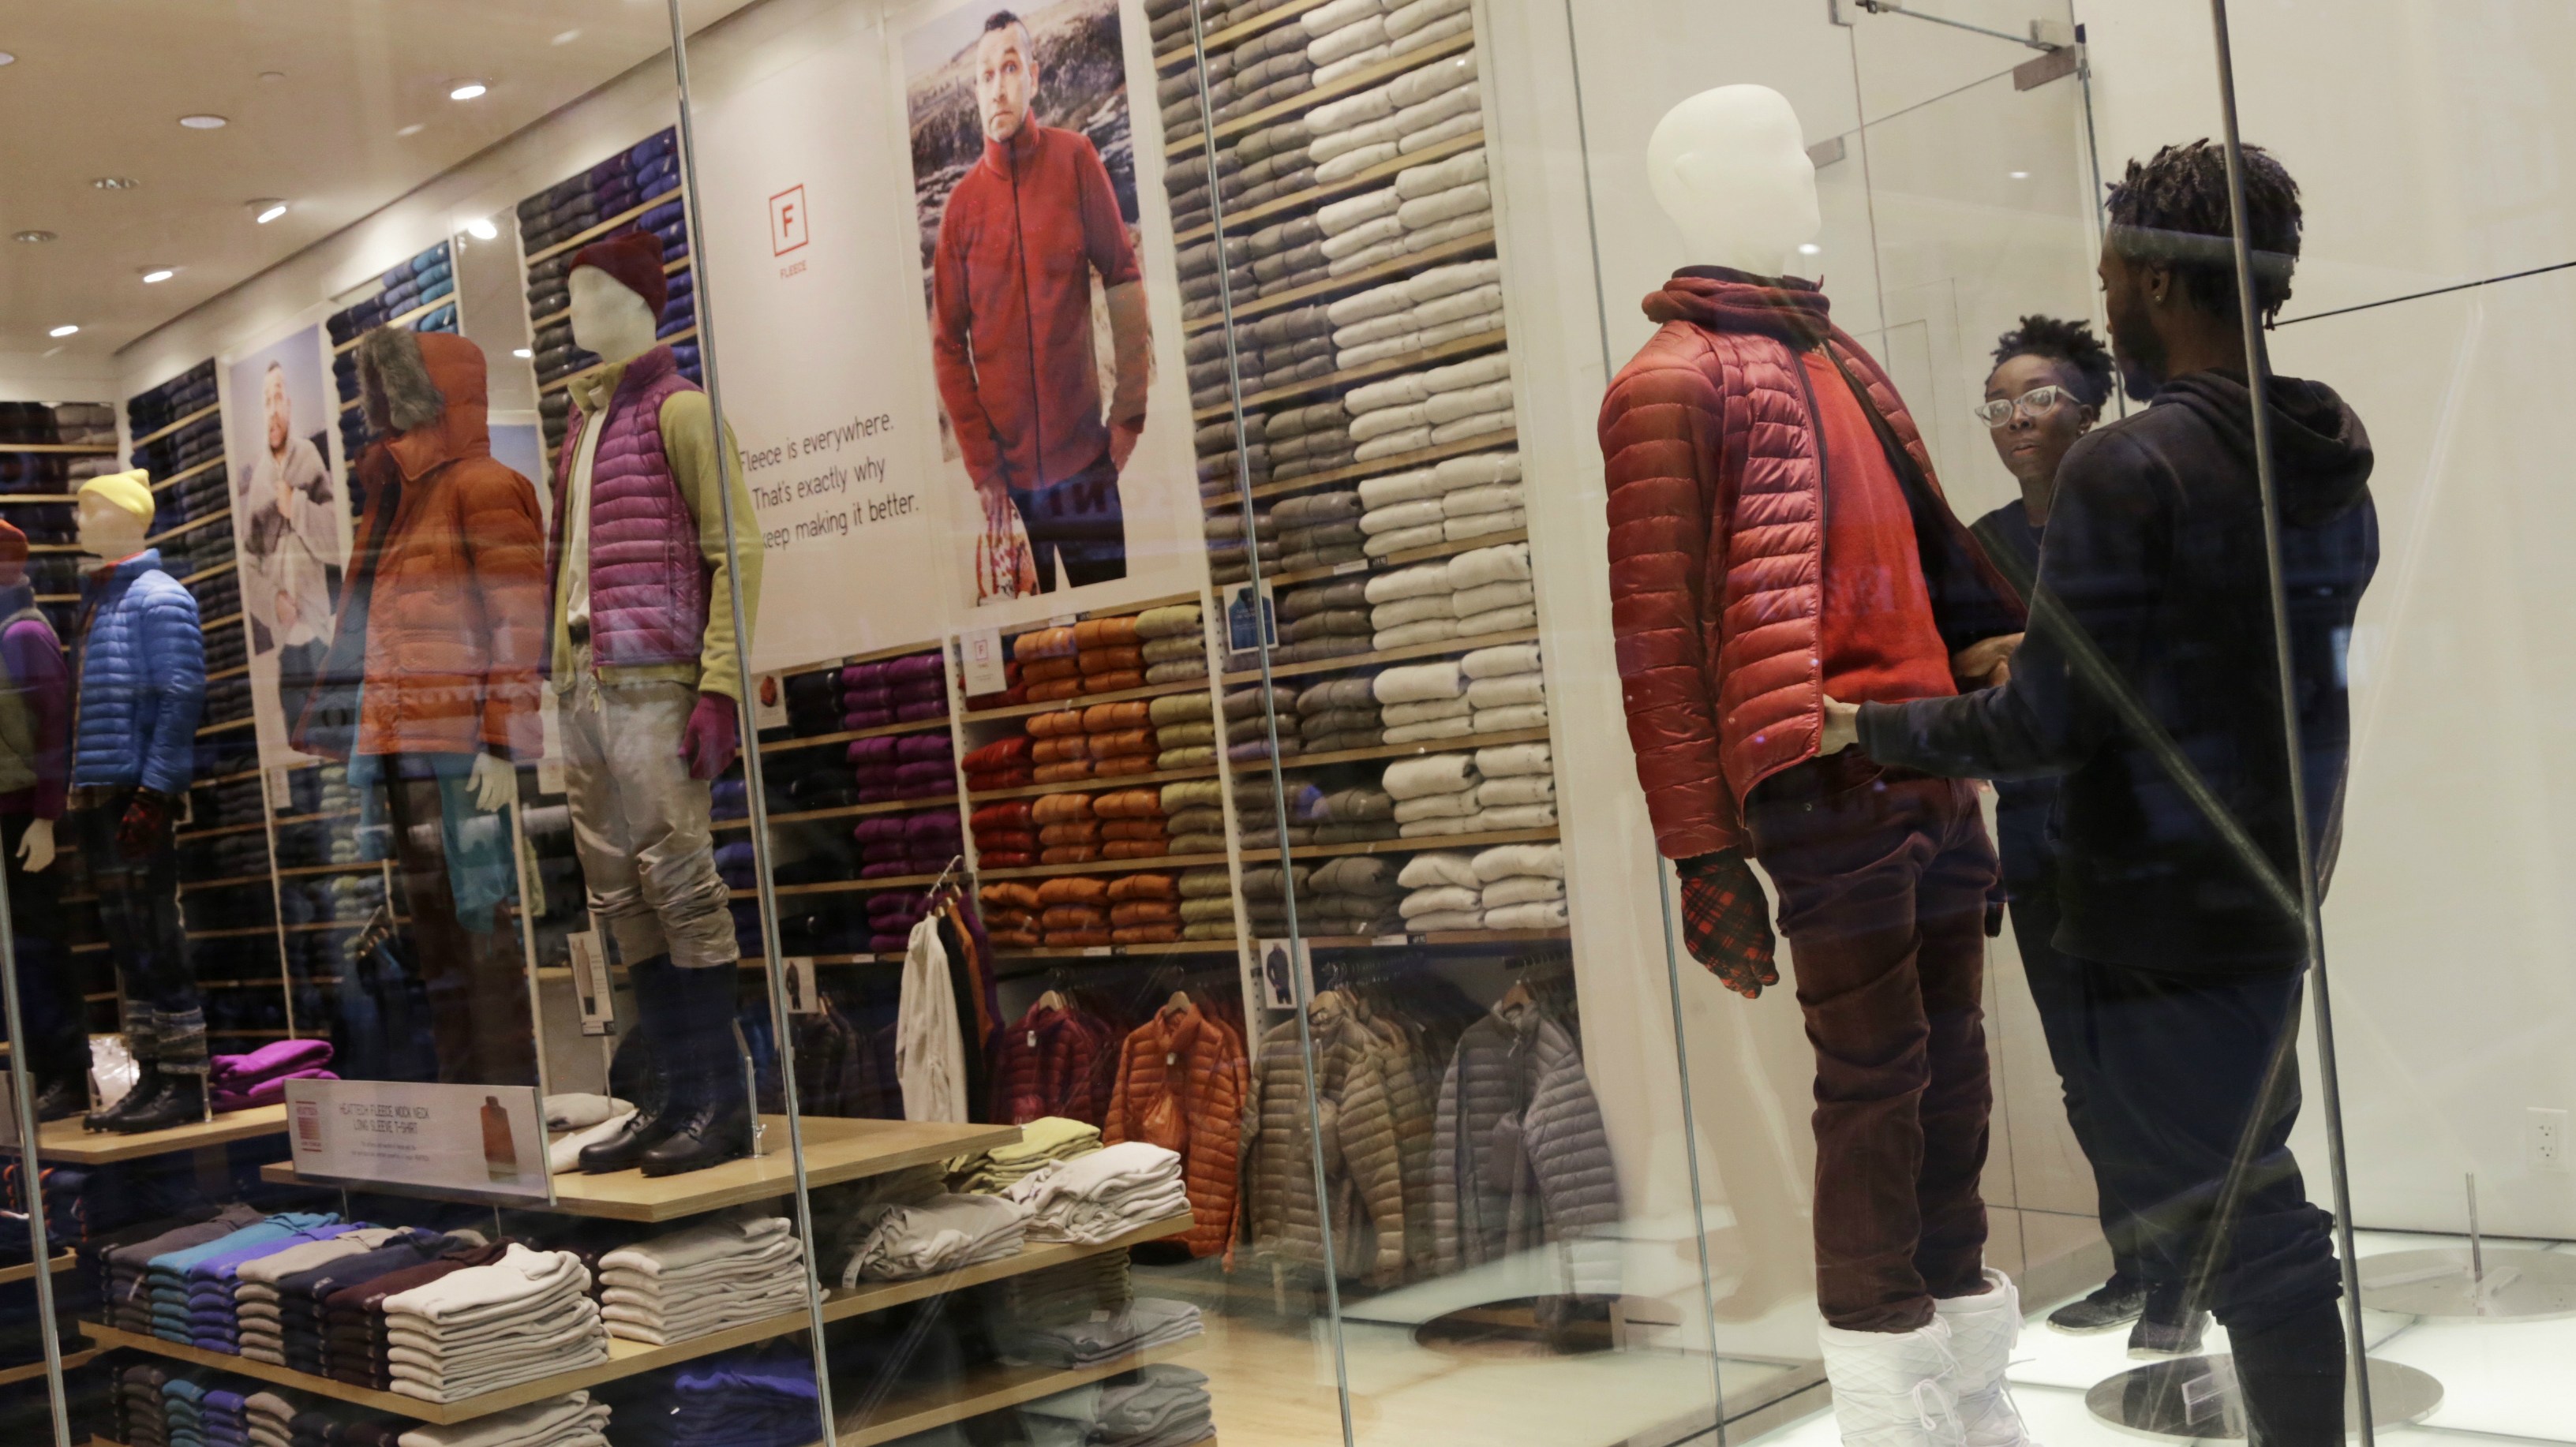 Store employees arrange a mannequin in a Uniqlo display window, Monday, Nov. 18, 2013 in New York. (AP Photo/Mark Lennihan)